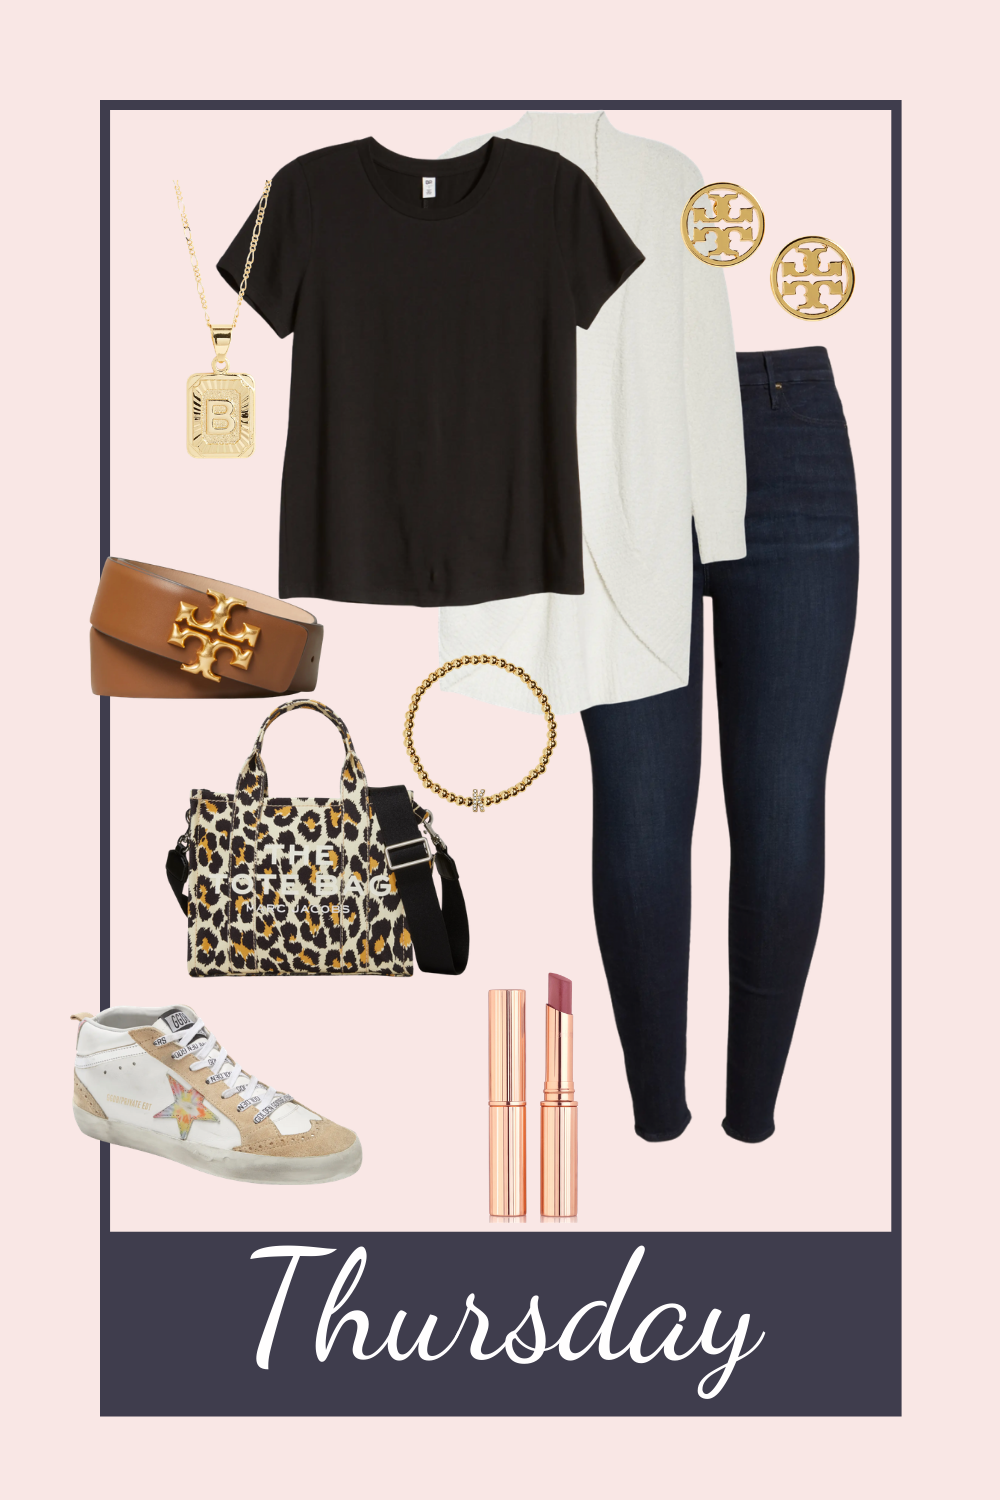 golden goose sneakers. designer inspired tote. mom uniform must haves. casual and trendy look. fashion for a mom over 30.